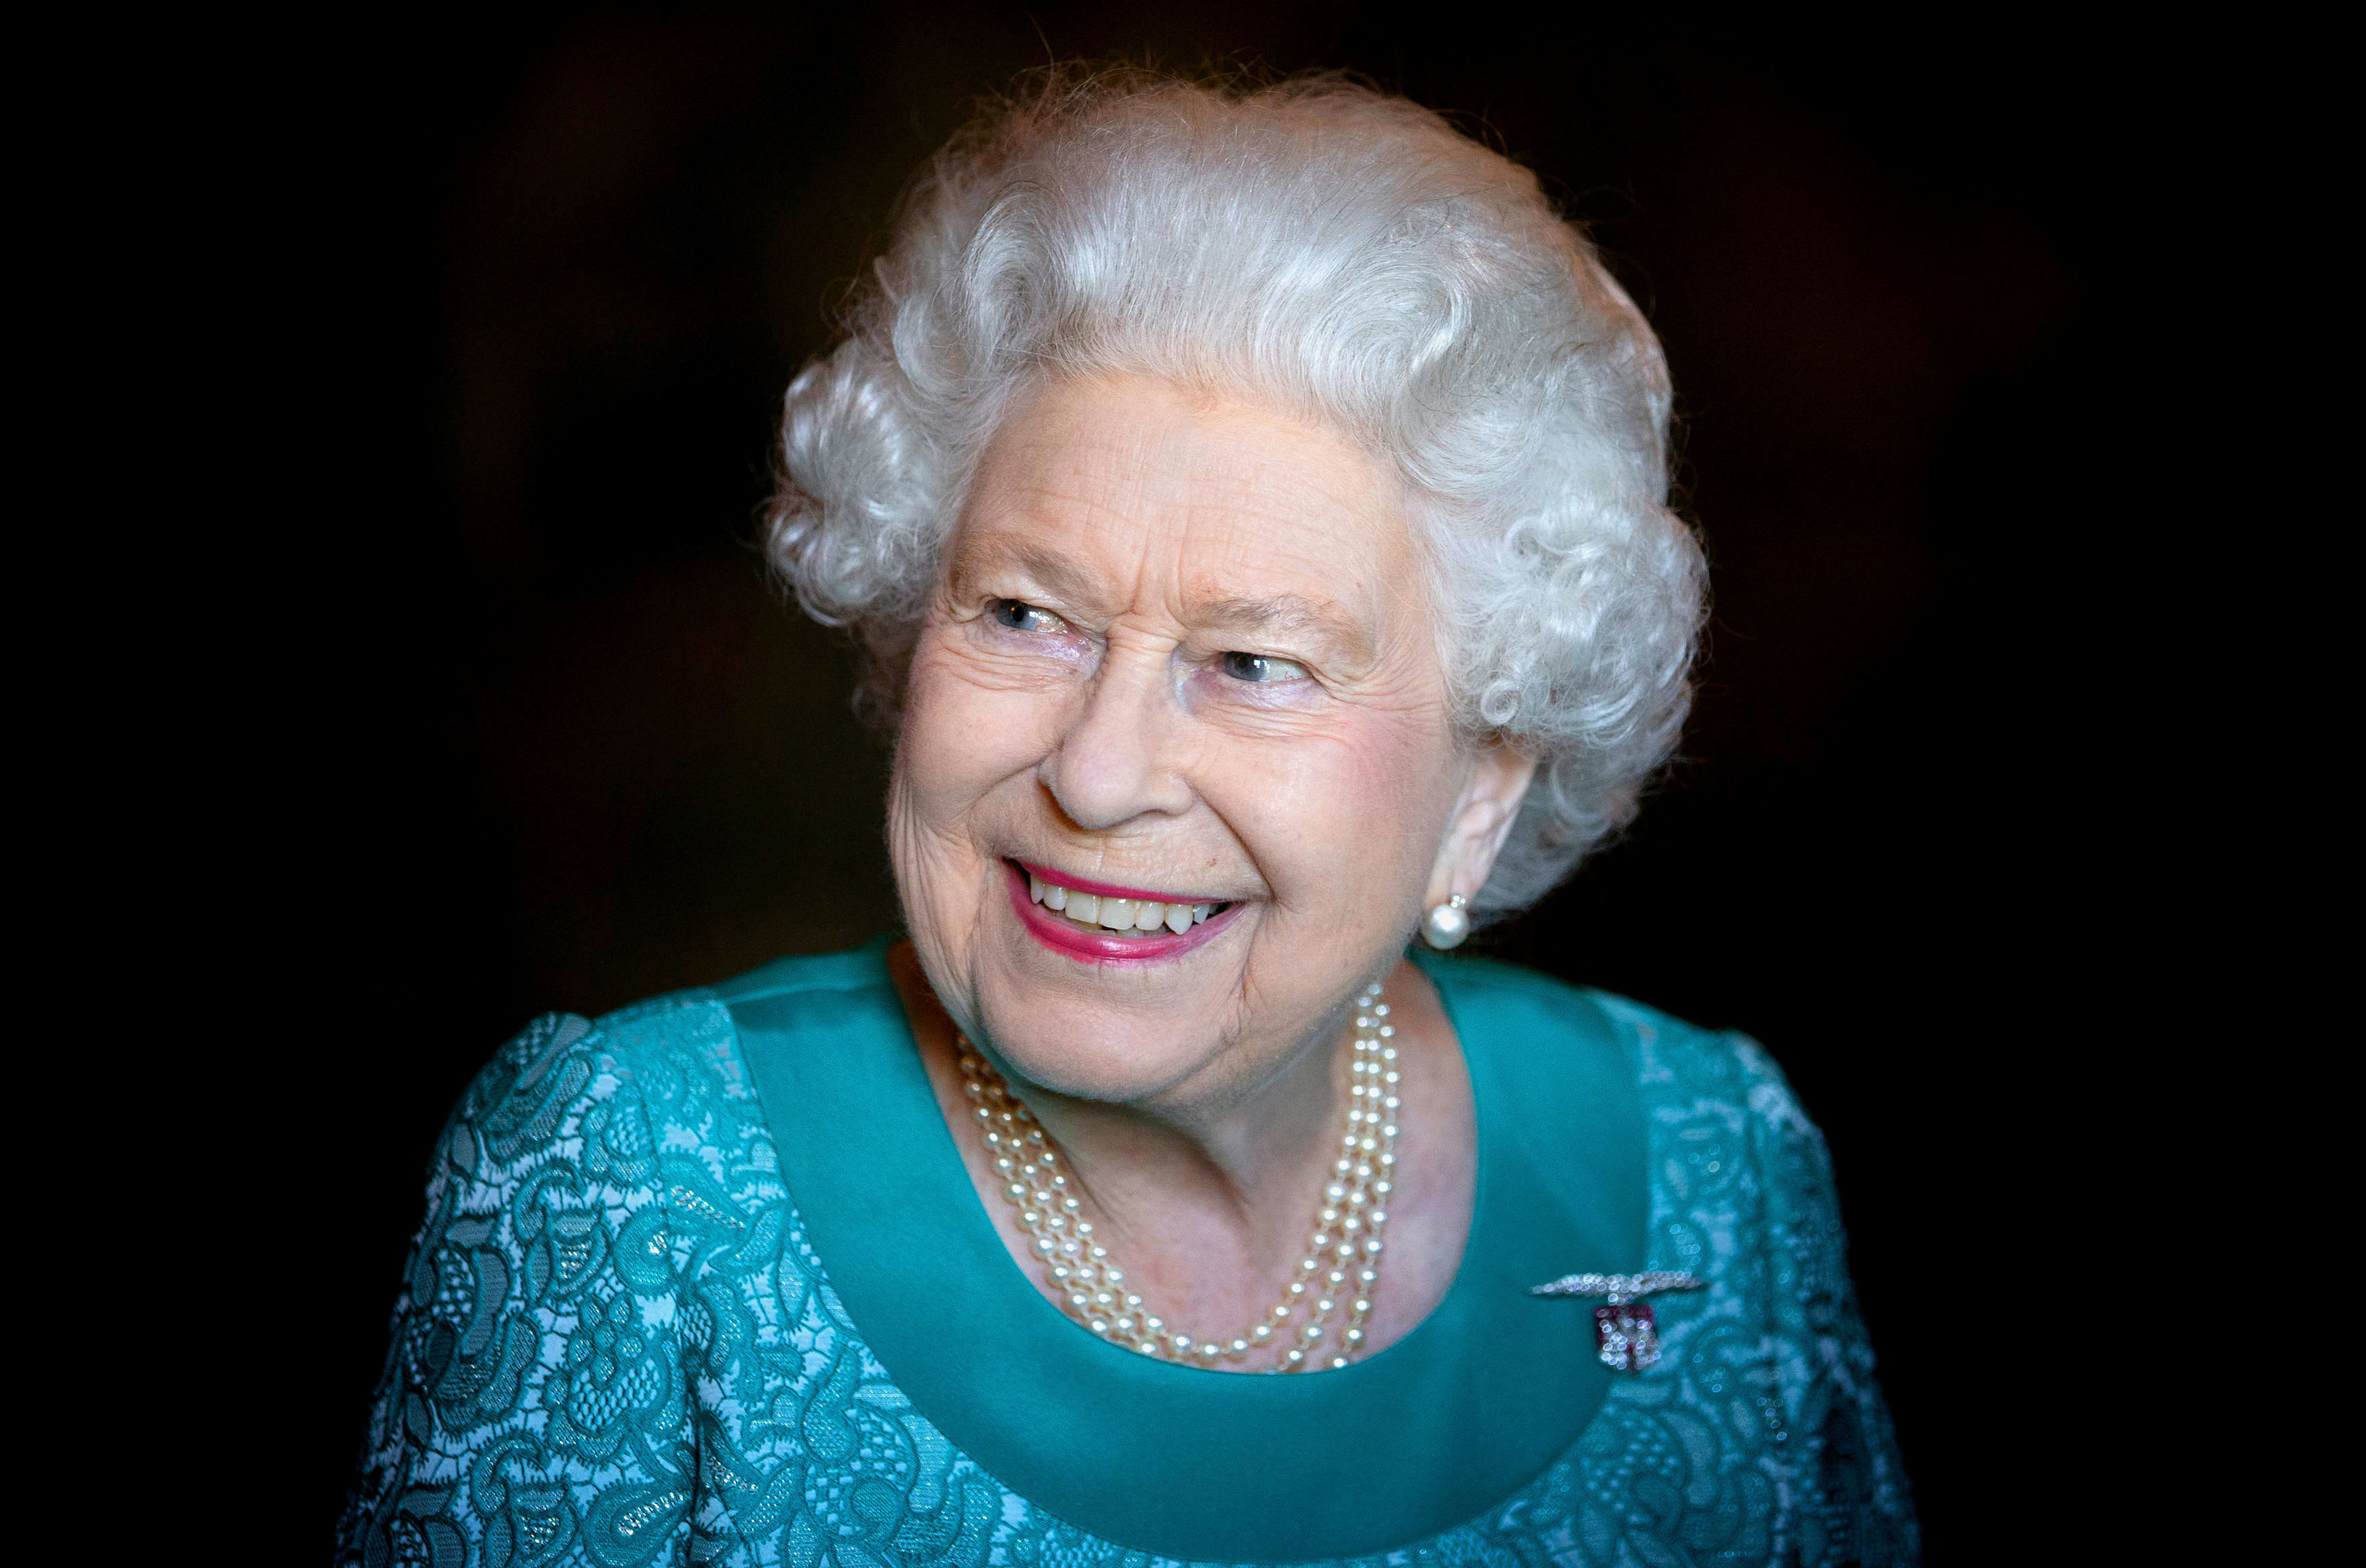 Queen Elizabeth II income from her private Duchy of Lancaster estate has increased by almost a million pounds to just over £20 million, new accounts have revealed. (Jane Barlow/PA Wire)